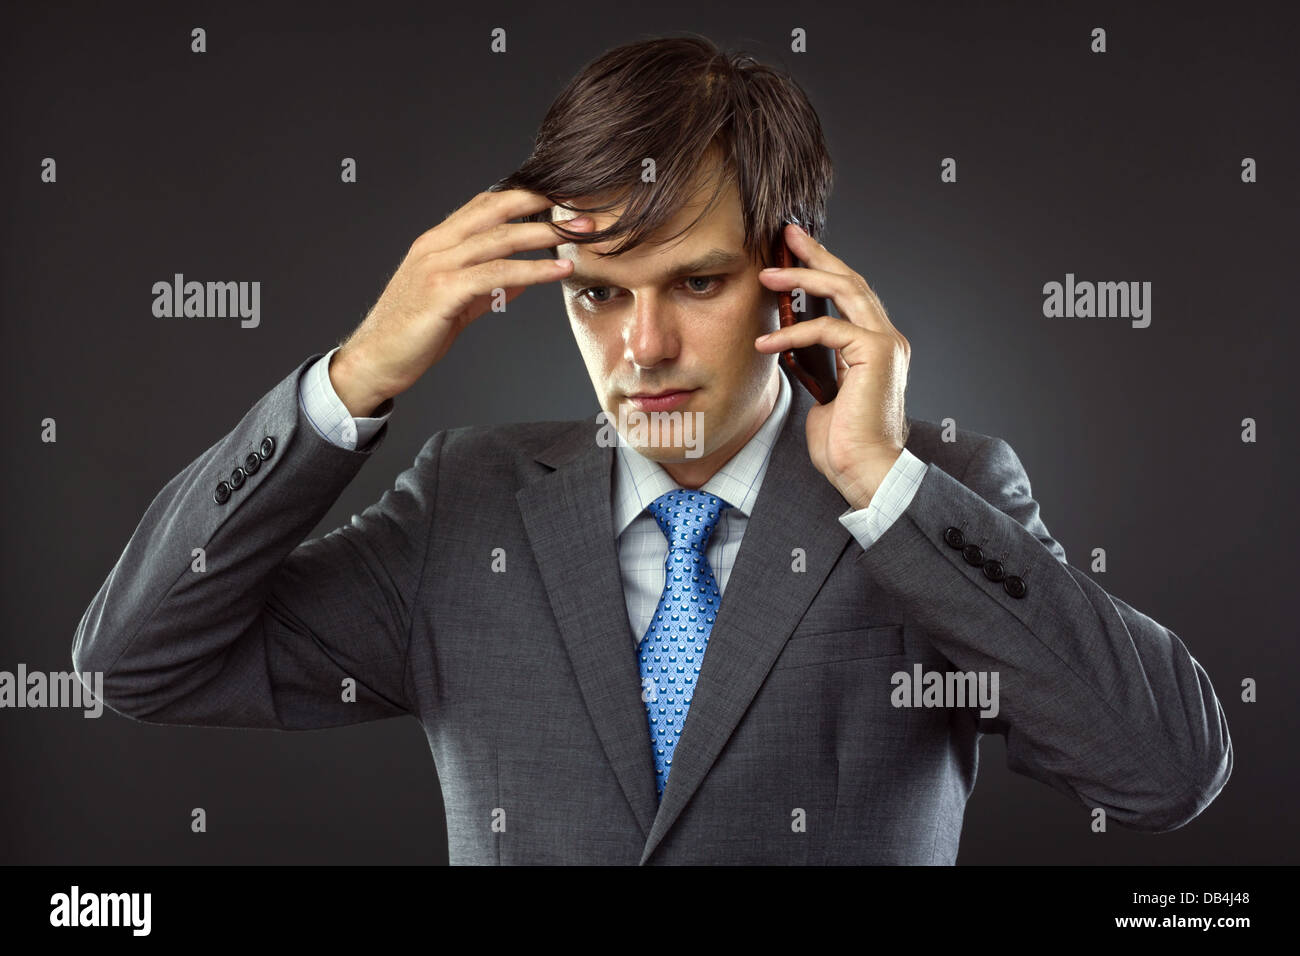 Business man talking on his cellphone and thinking - Stock Image